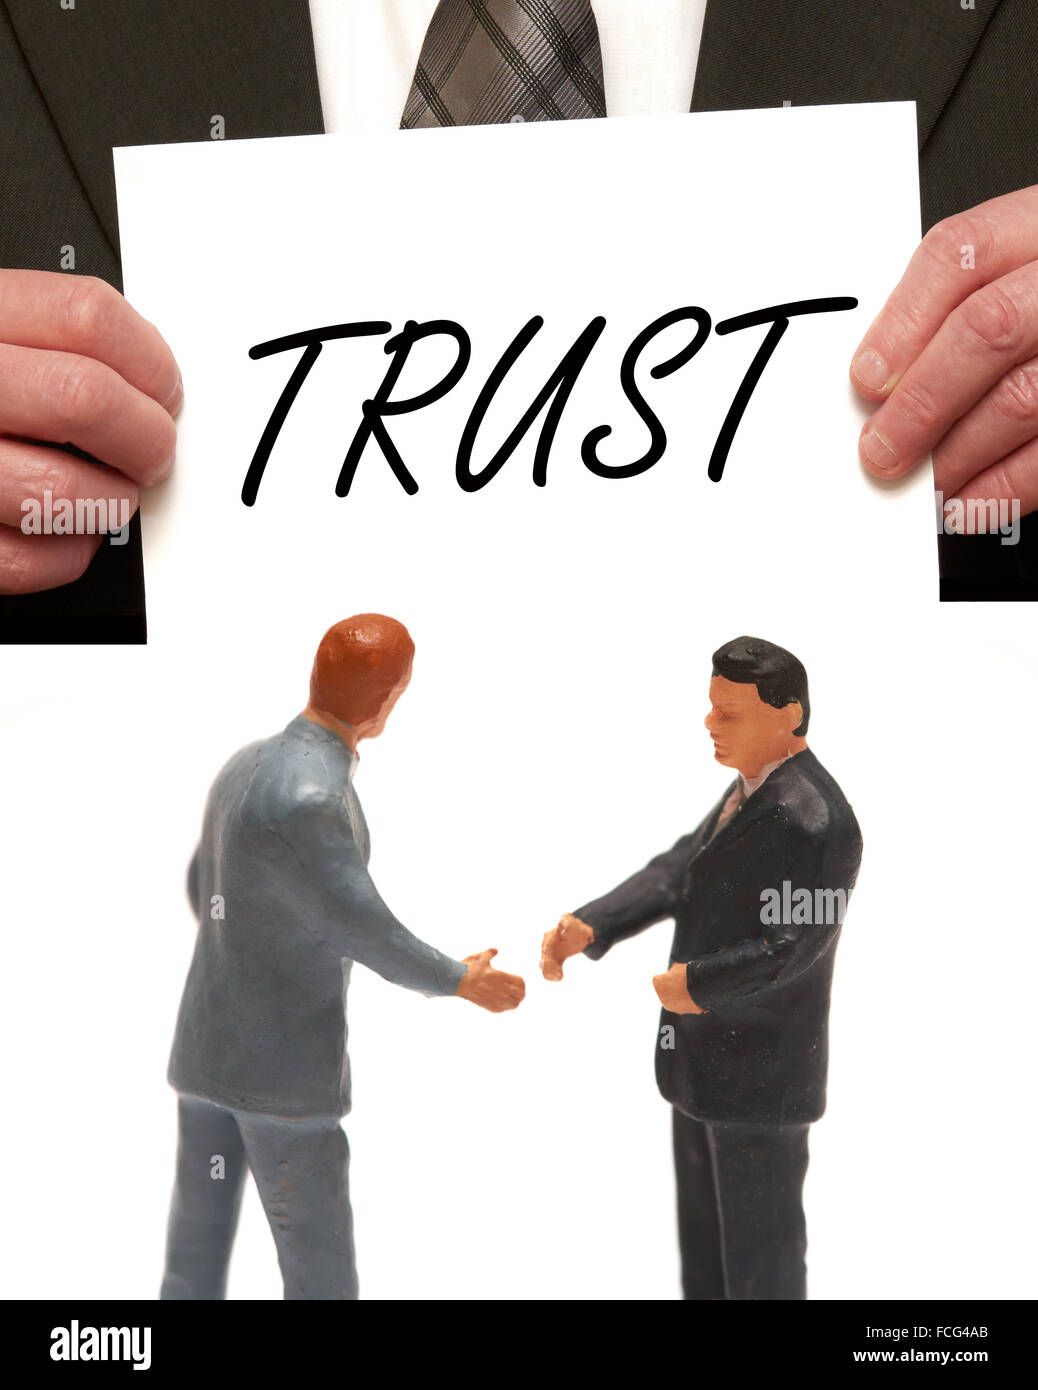 Trust concept  2 miniature figurines in suits shaking hands - Stock Image